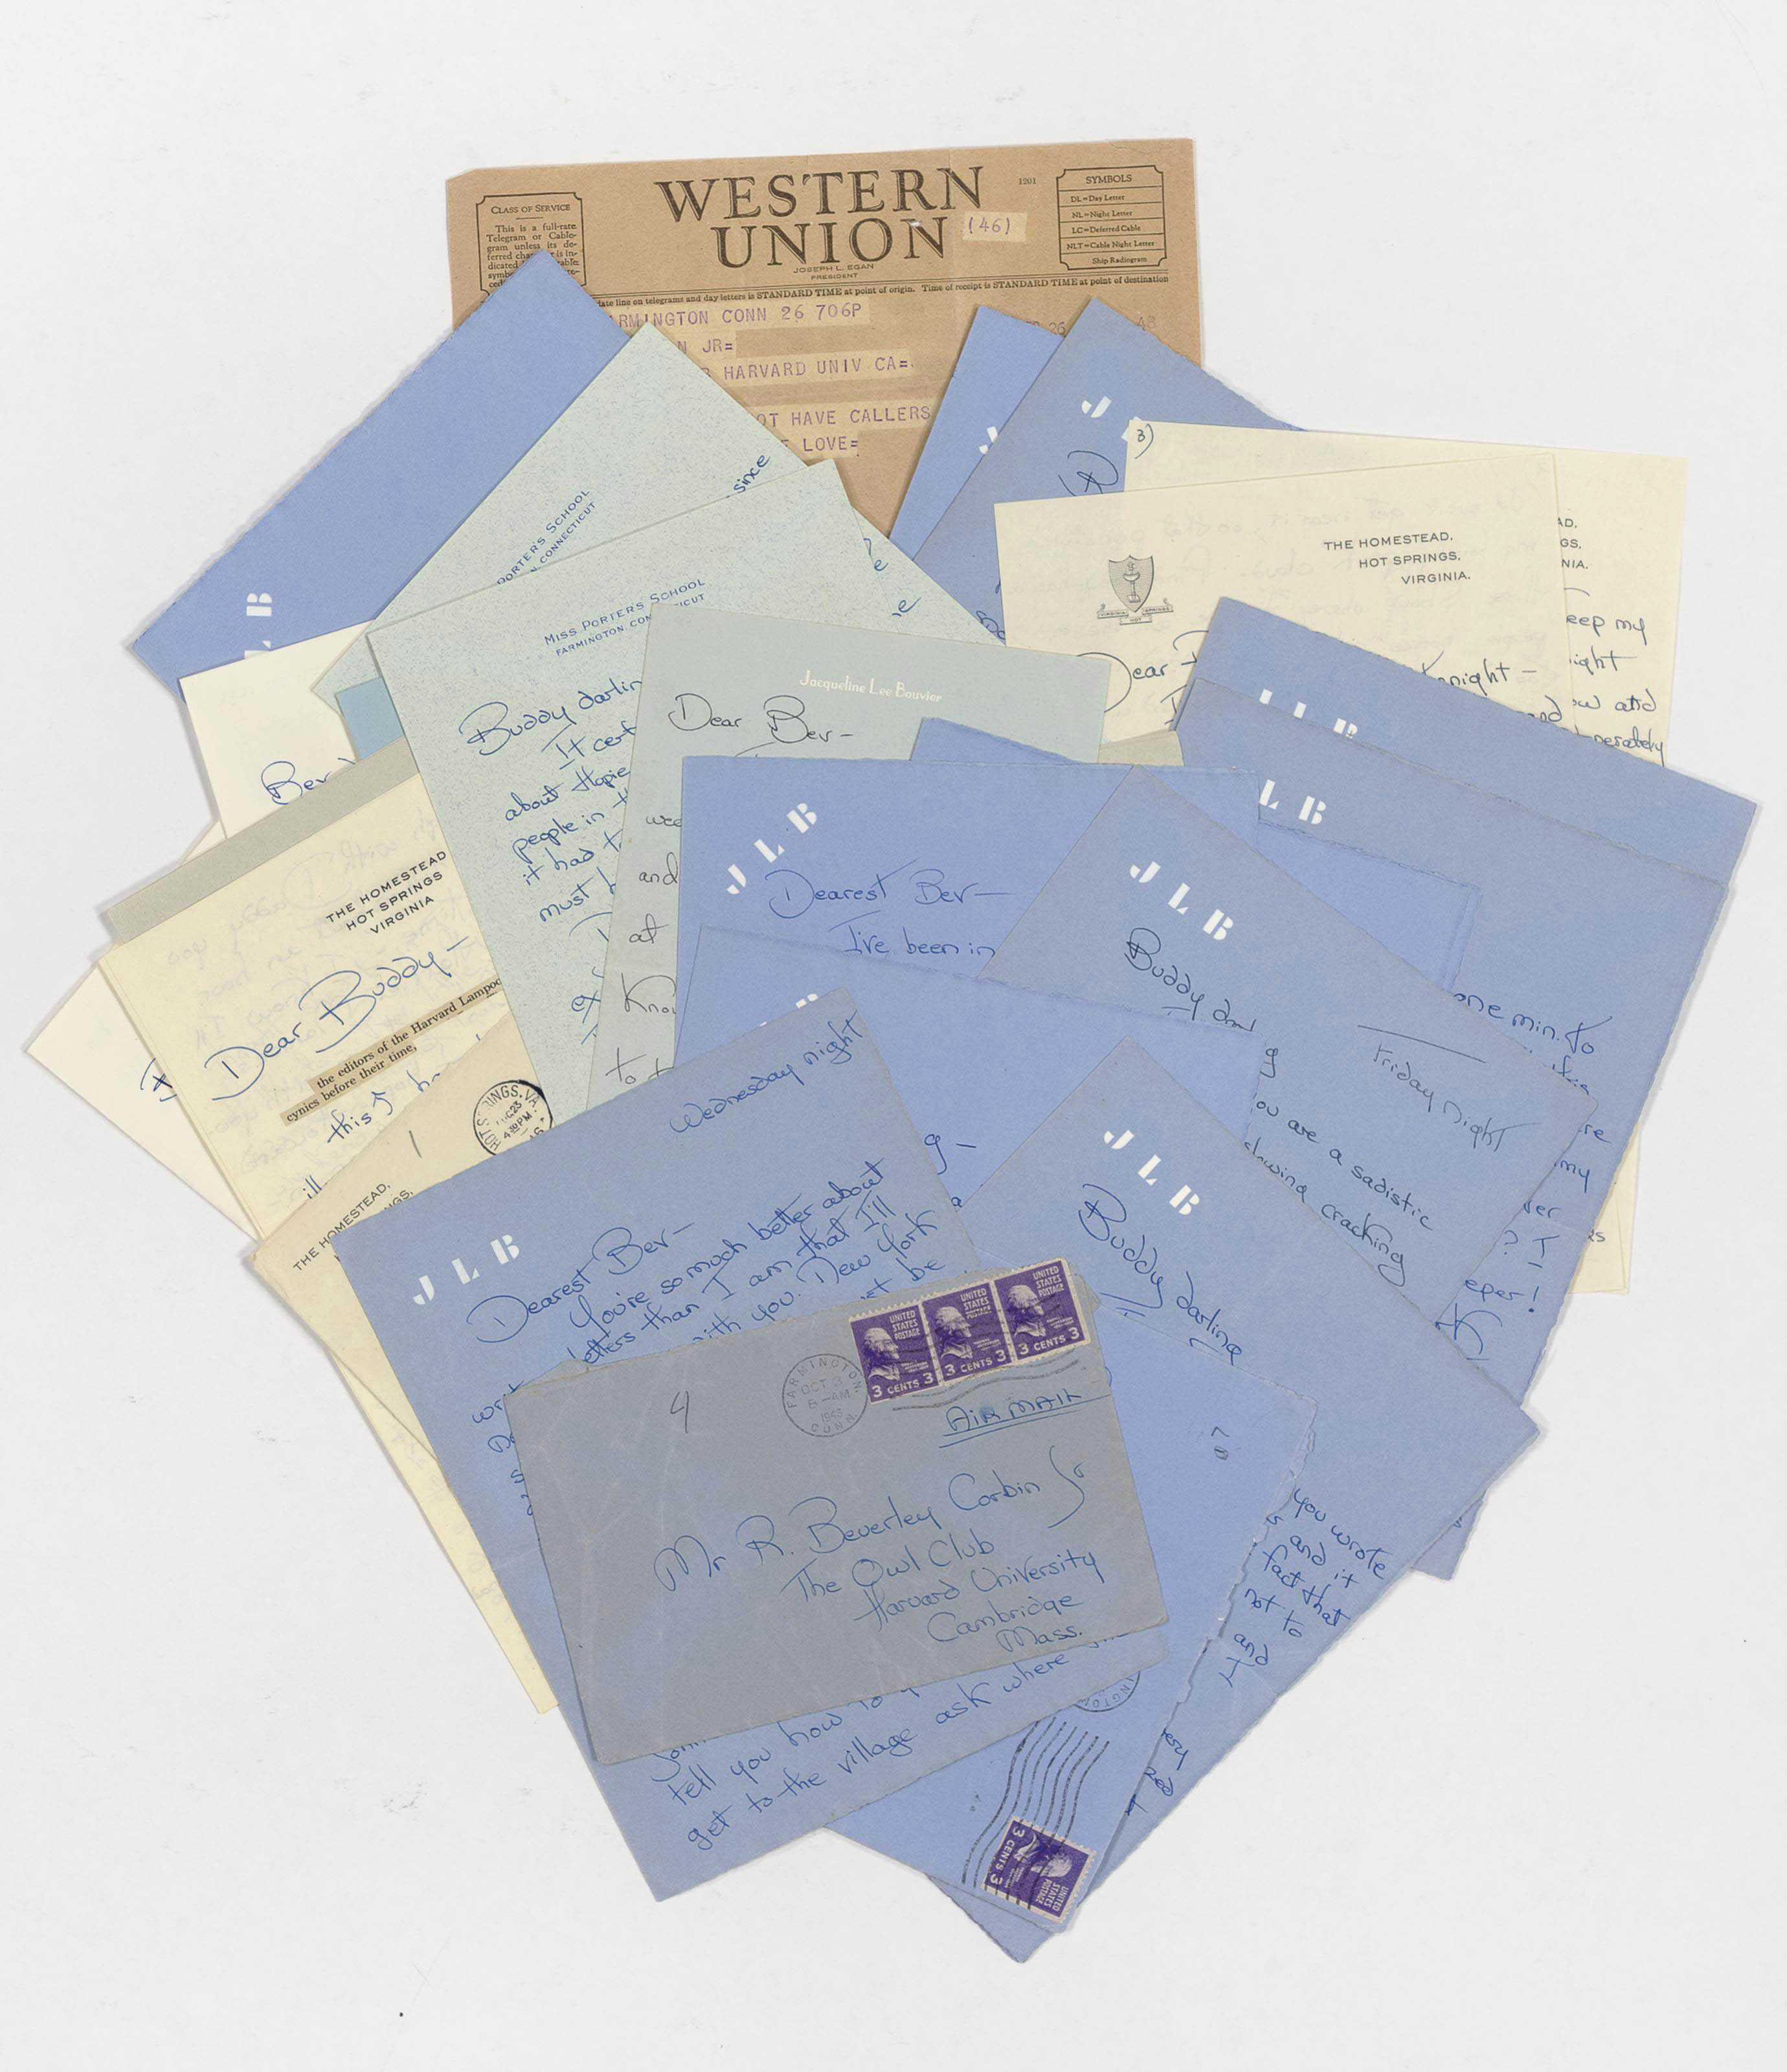 """KENNEDY ONASSIS, Jacqueline Bouvier (1929-1994). Twenty two autograph letters signed (""""Jackie"""") and one printed telegram, to R. Beverley Corbin, Jr., Farmington, Connecticut, 1945-1951. Together 75 pages, 8vos, on personal stationery and stationery of Miss Porter's School, all but one with original envelope. [With:] KENNEDY ONASSIS. Black and white photograph, unsigned, n.d. (6¾ x 4½in.),"""